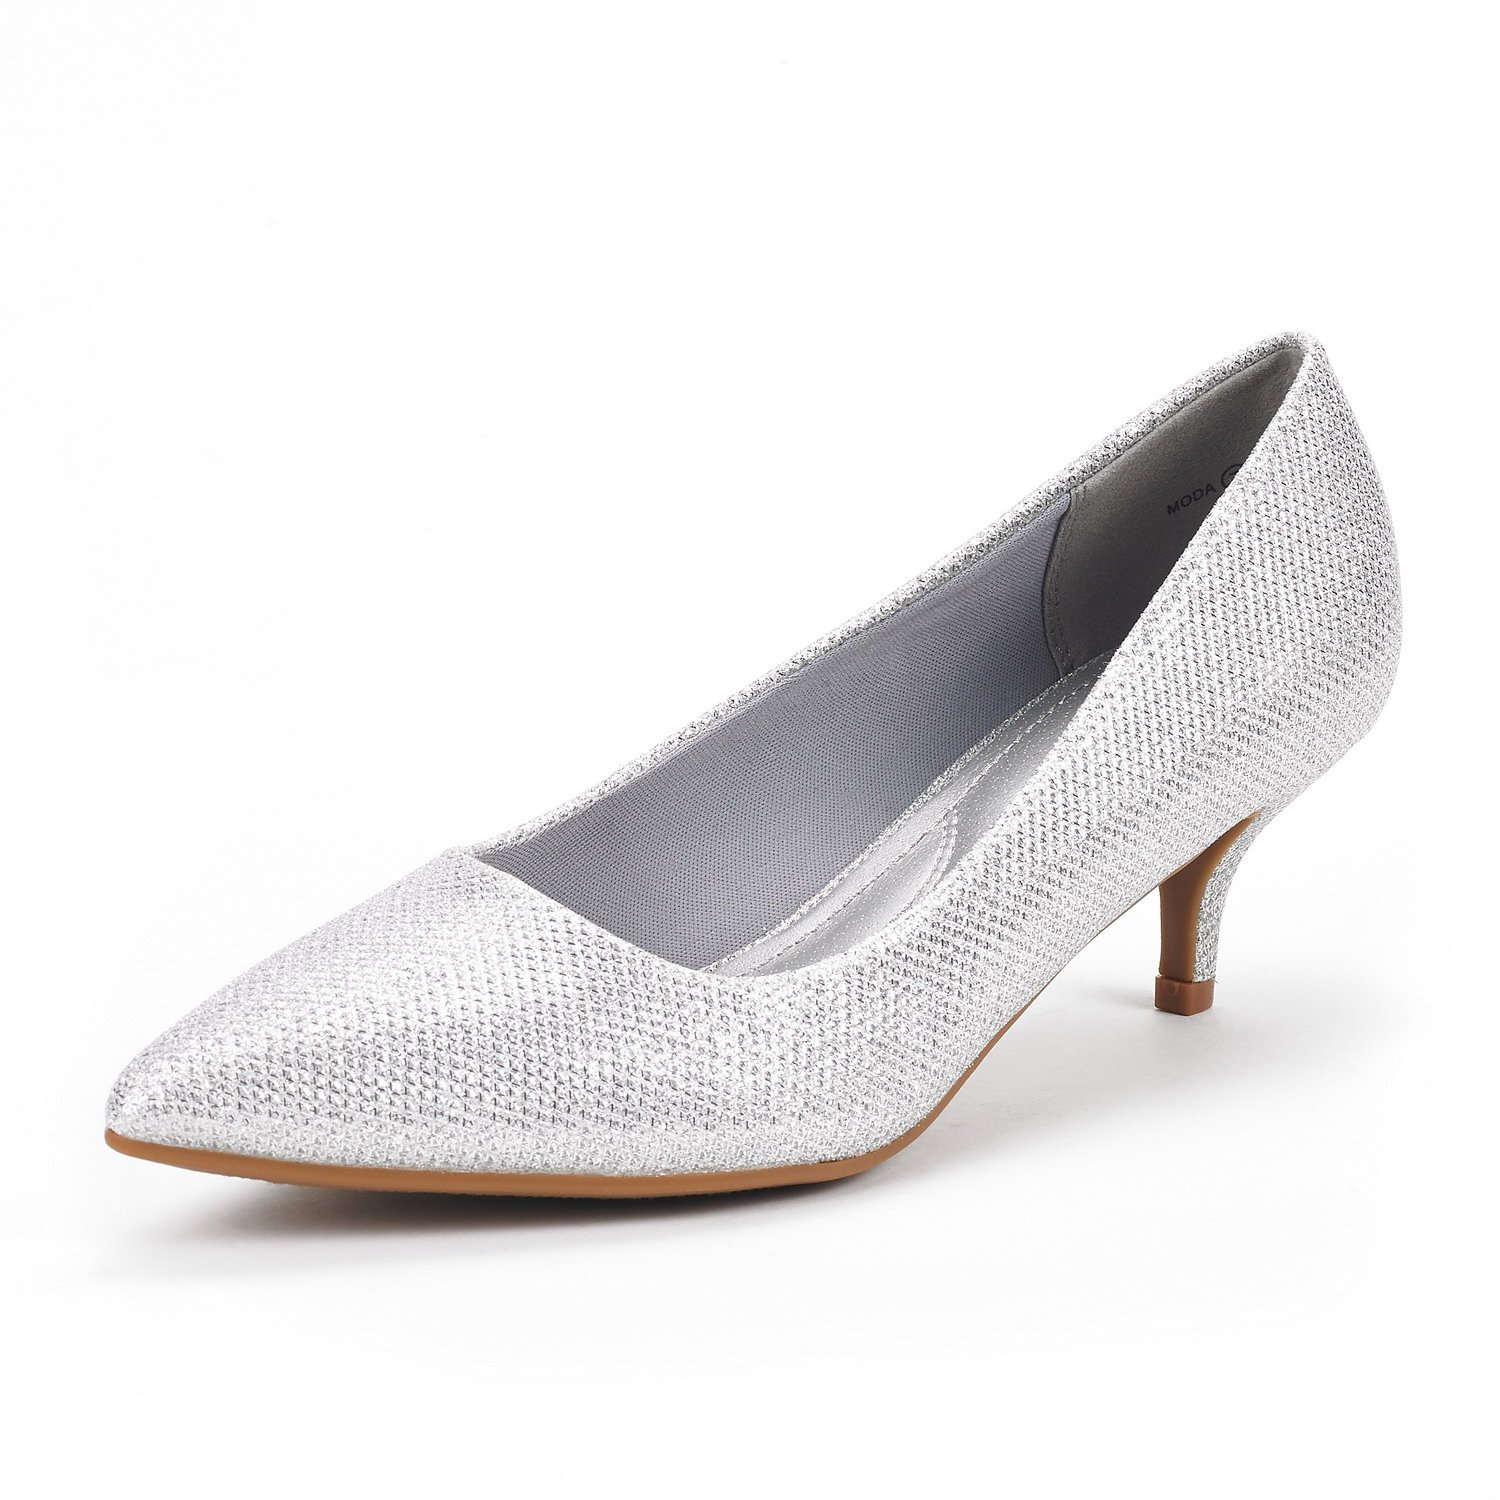 DREAM PAIRS Women's Moda Silver Glitter Low Heel D'Orsay Pointed Toe Pump Shoes Size 9 M US